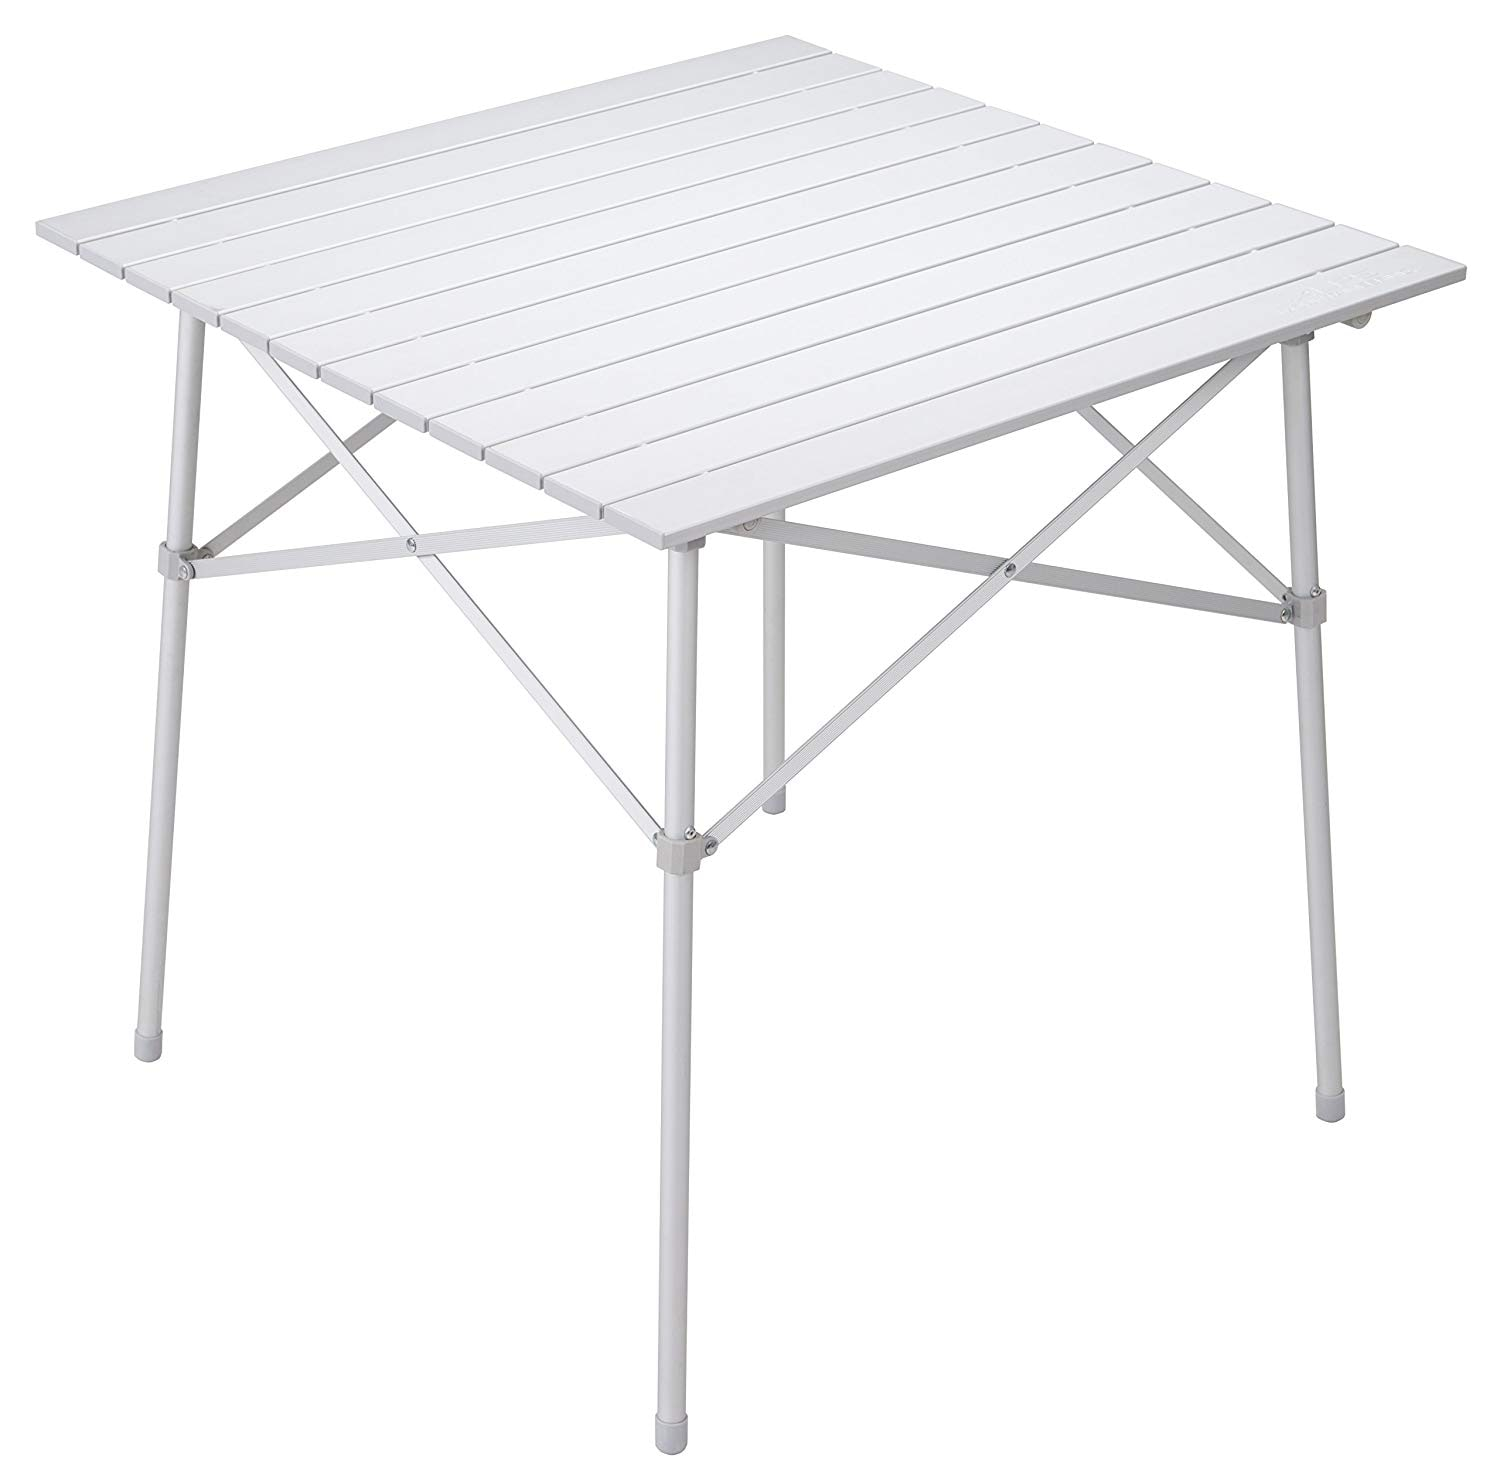 ALPS Mountaineering Top-Folding Camp Table (white) $28 + Free Shipping w/ Prime